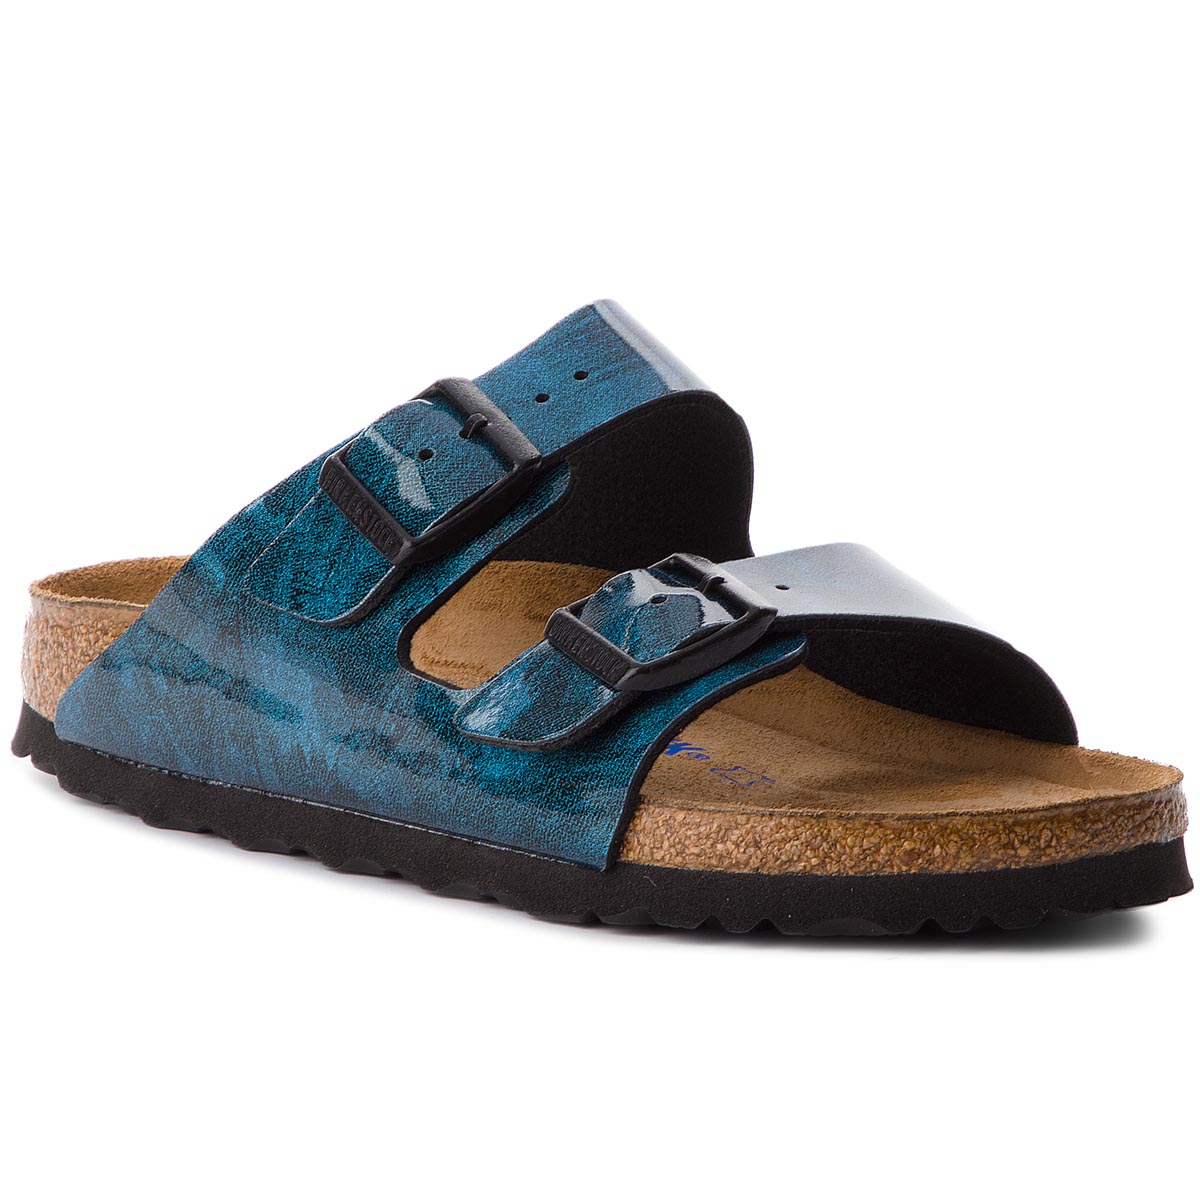 Klapki BIRKENSTOCK - Arizona Bs 1011137 Strong Blue